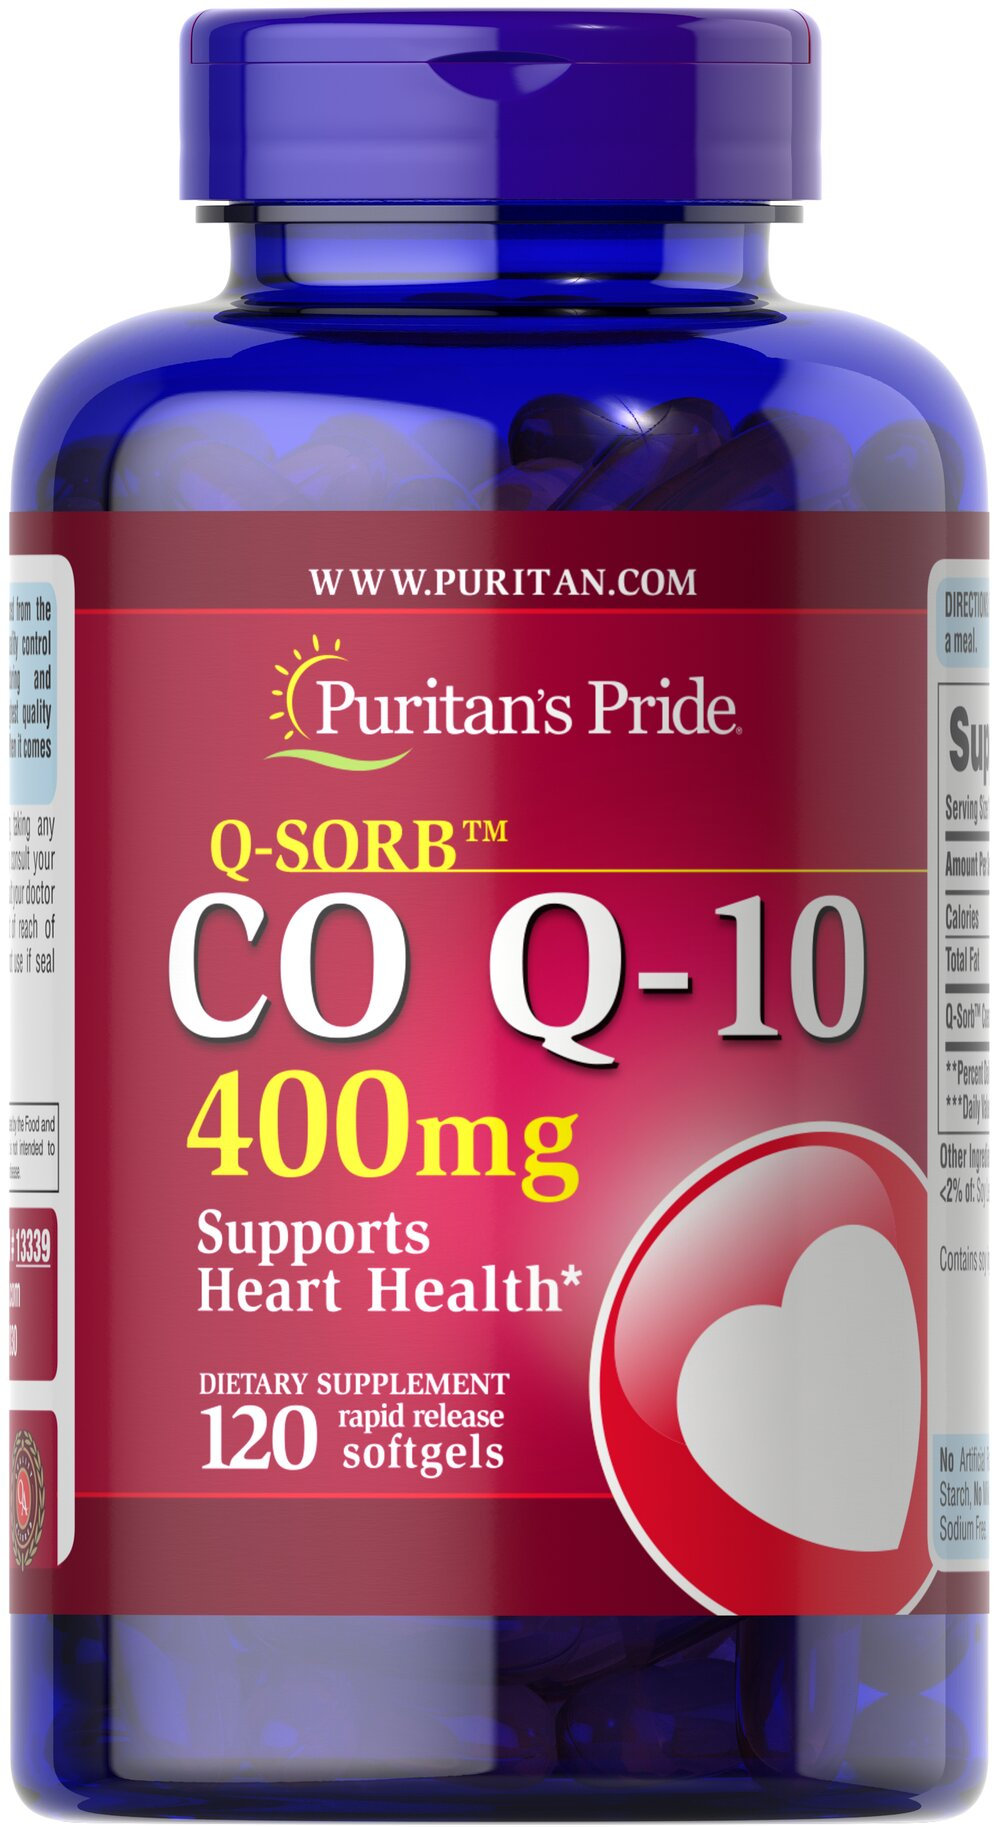 Q-Sorb™ CO Q-10 400 mg  120 Softgels 400 mg $96.99